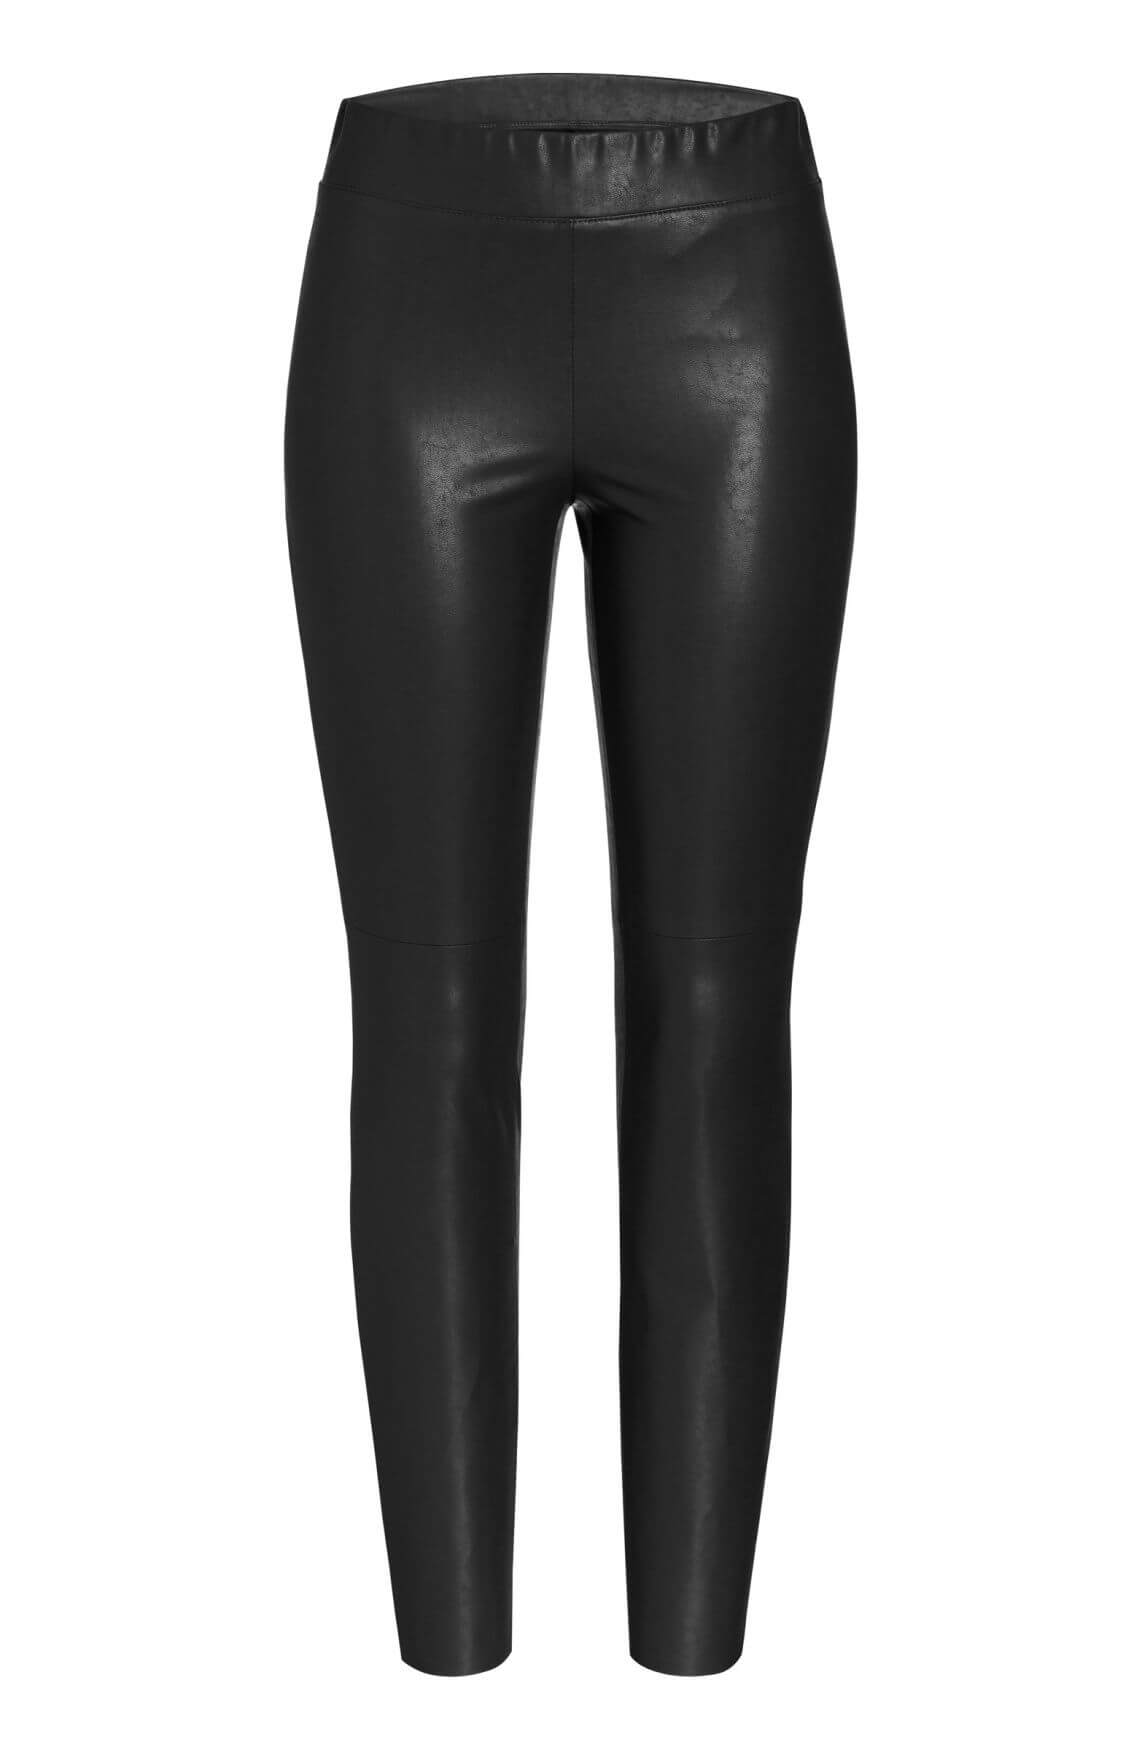 Cambio Dames Broek fake leather zwart